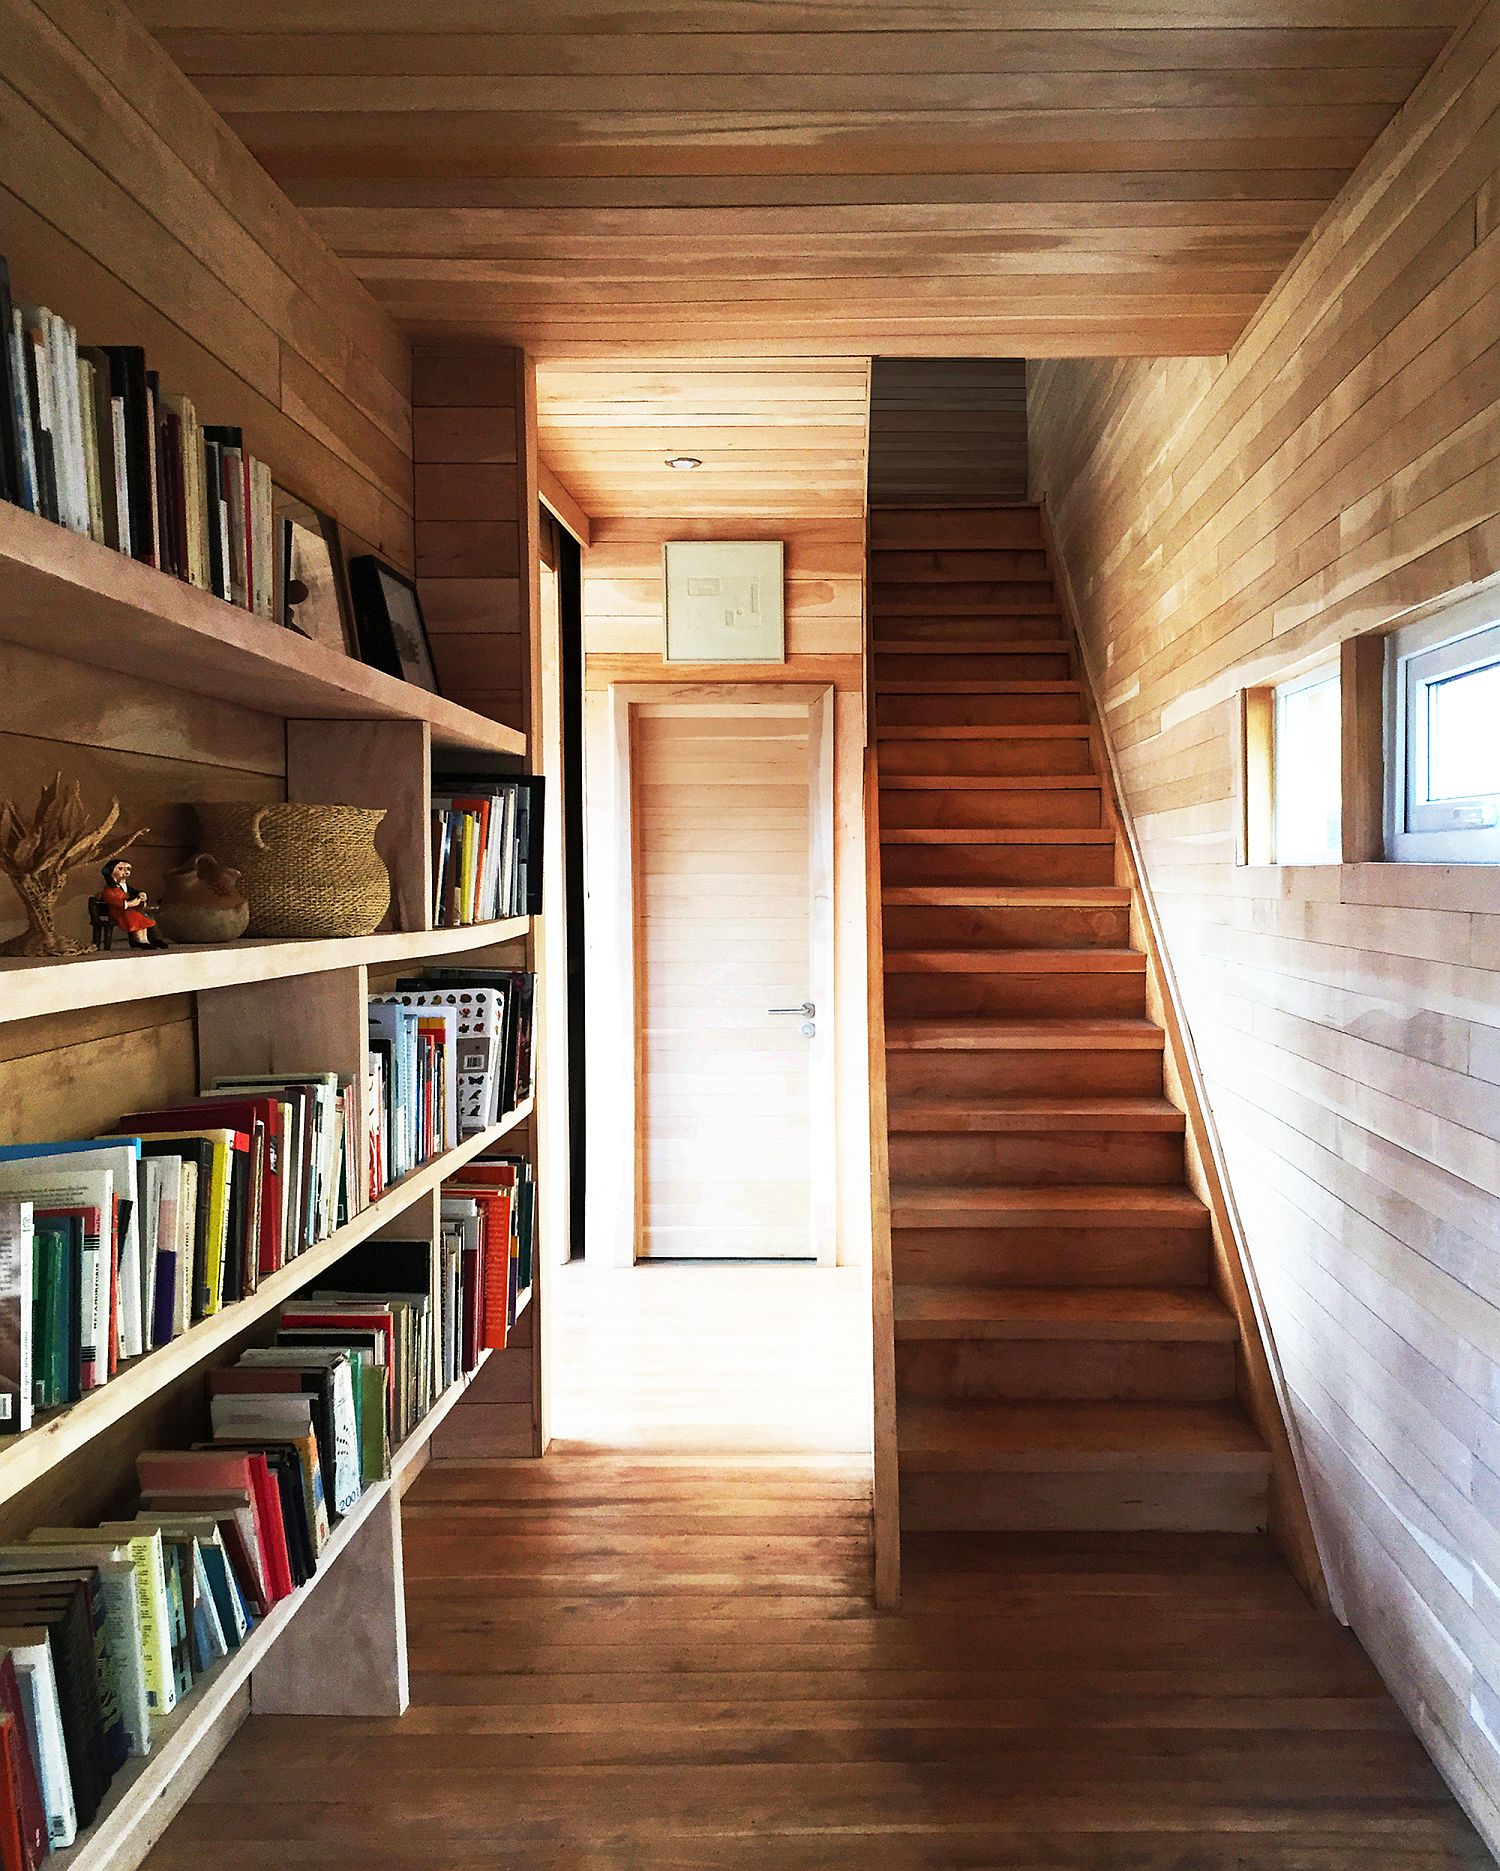 Bookshelf in the hallway is a space-savvy addition